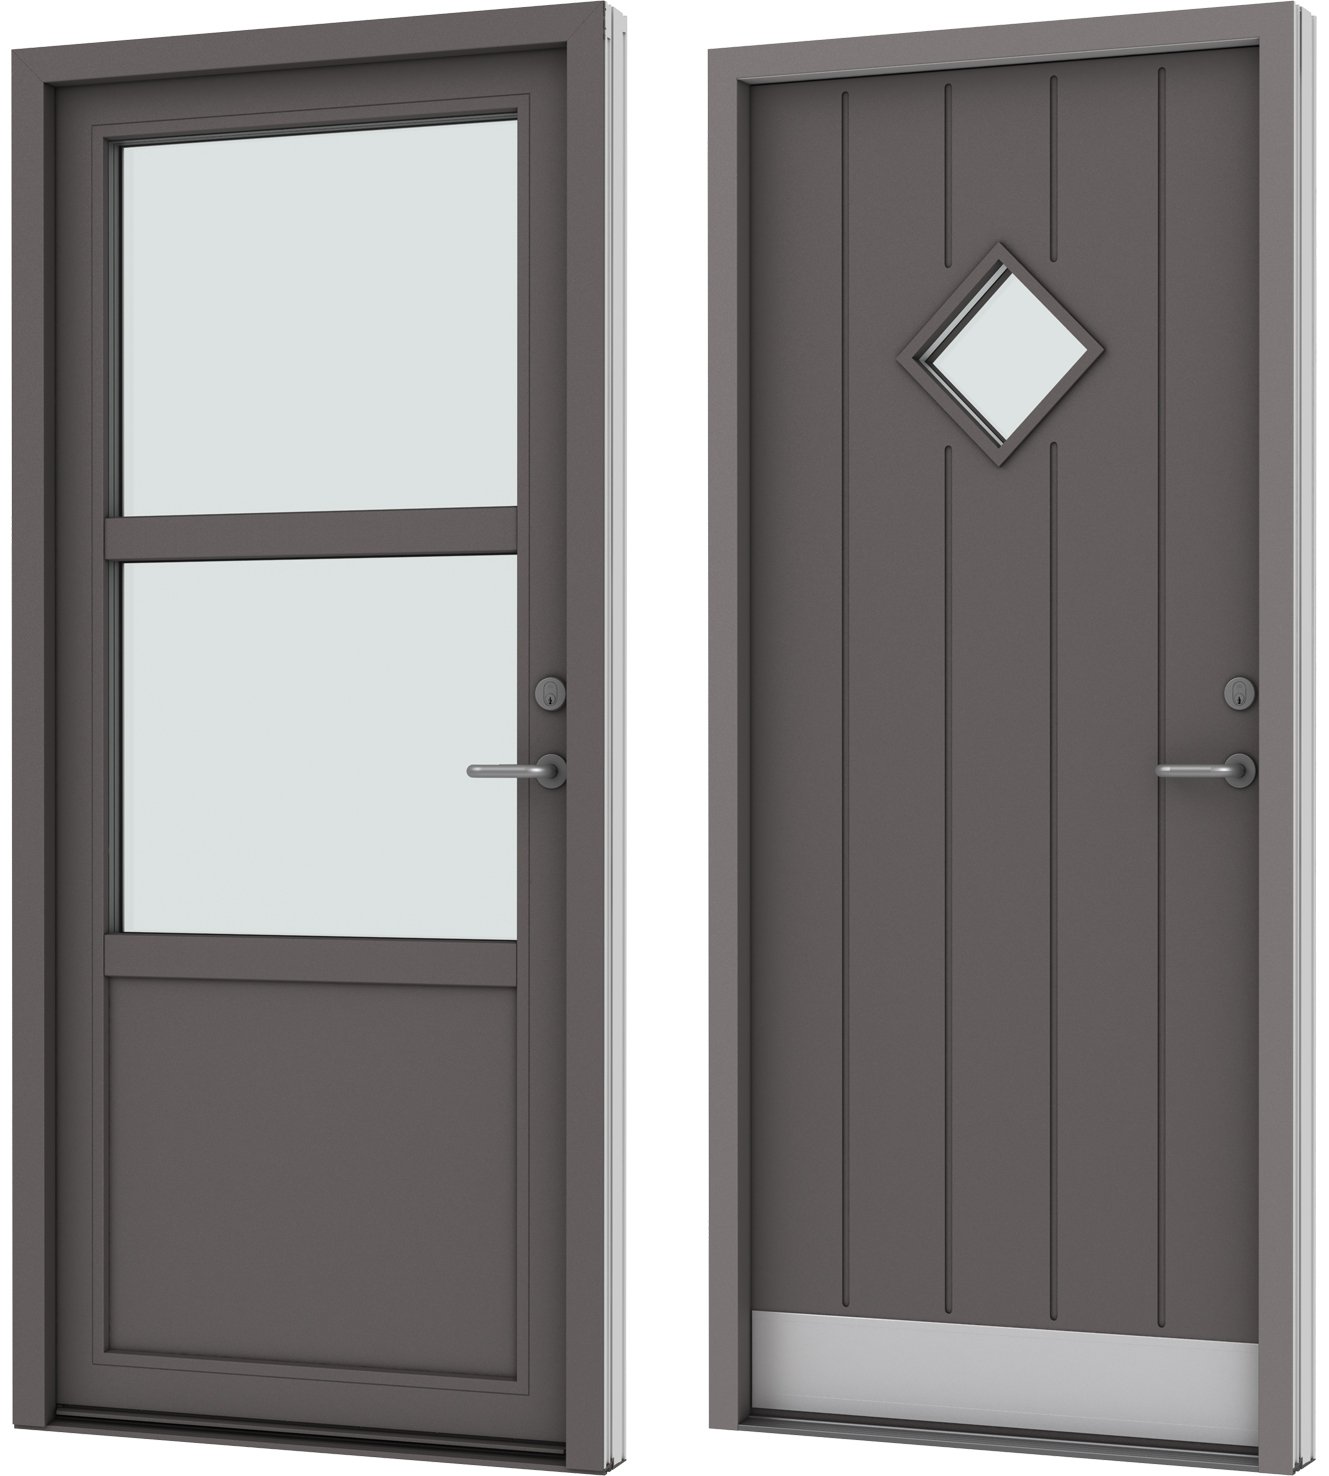 Entrance door in wood and aluminium